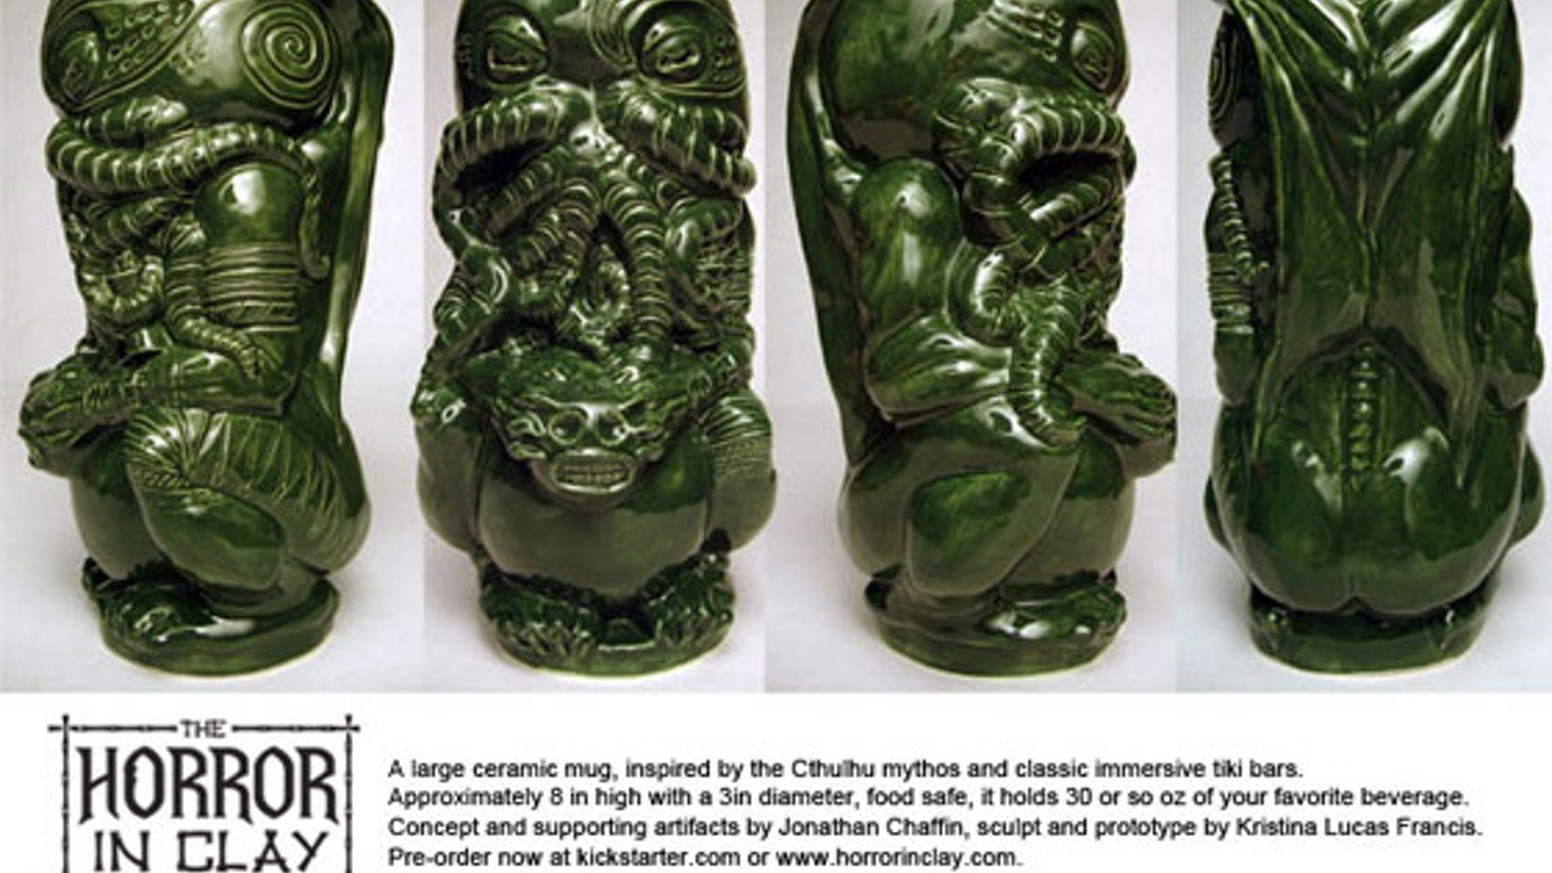 Experience The Horror In Clay; a large original Cthulhu tiki mug complete with backstory and artifacts. Production run of 500+